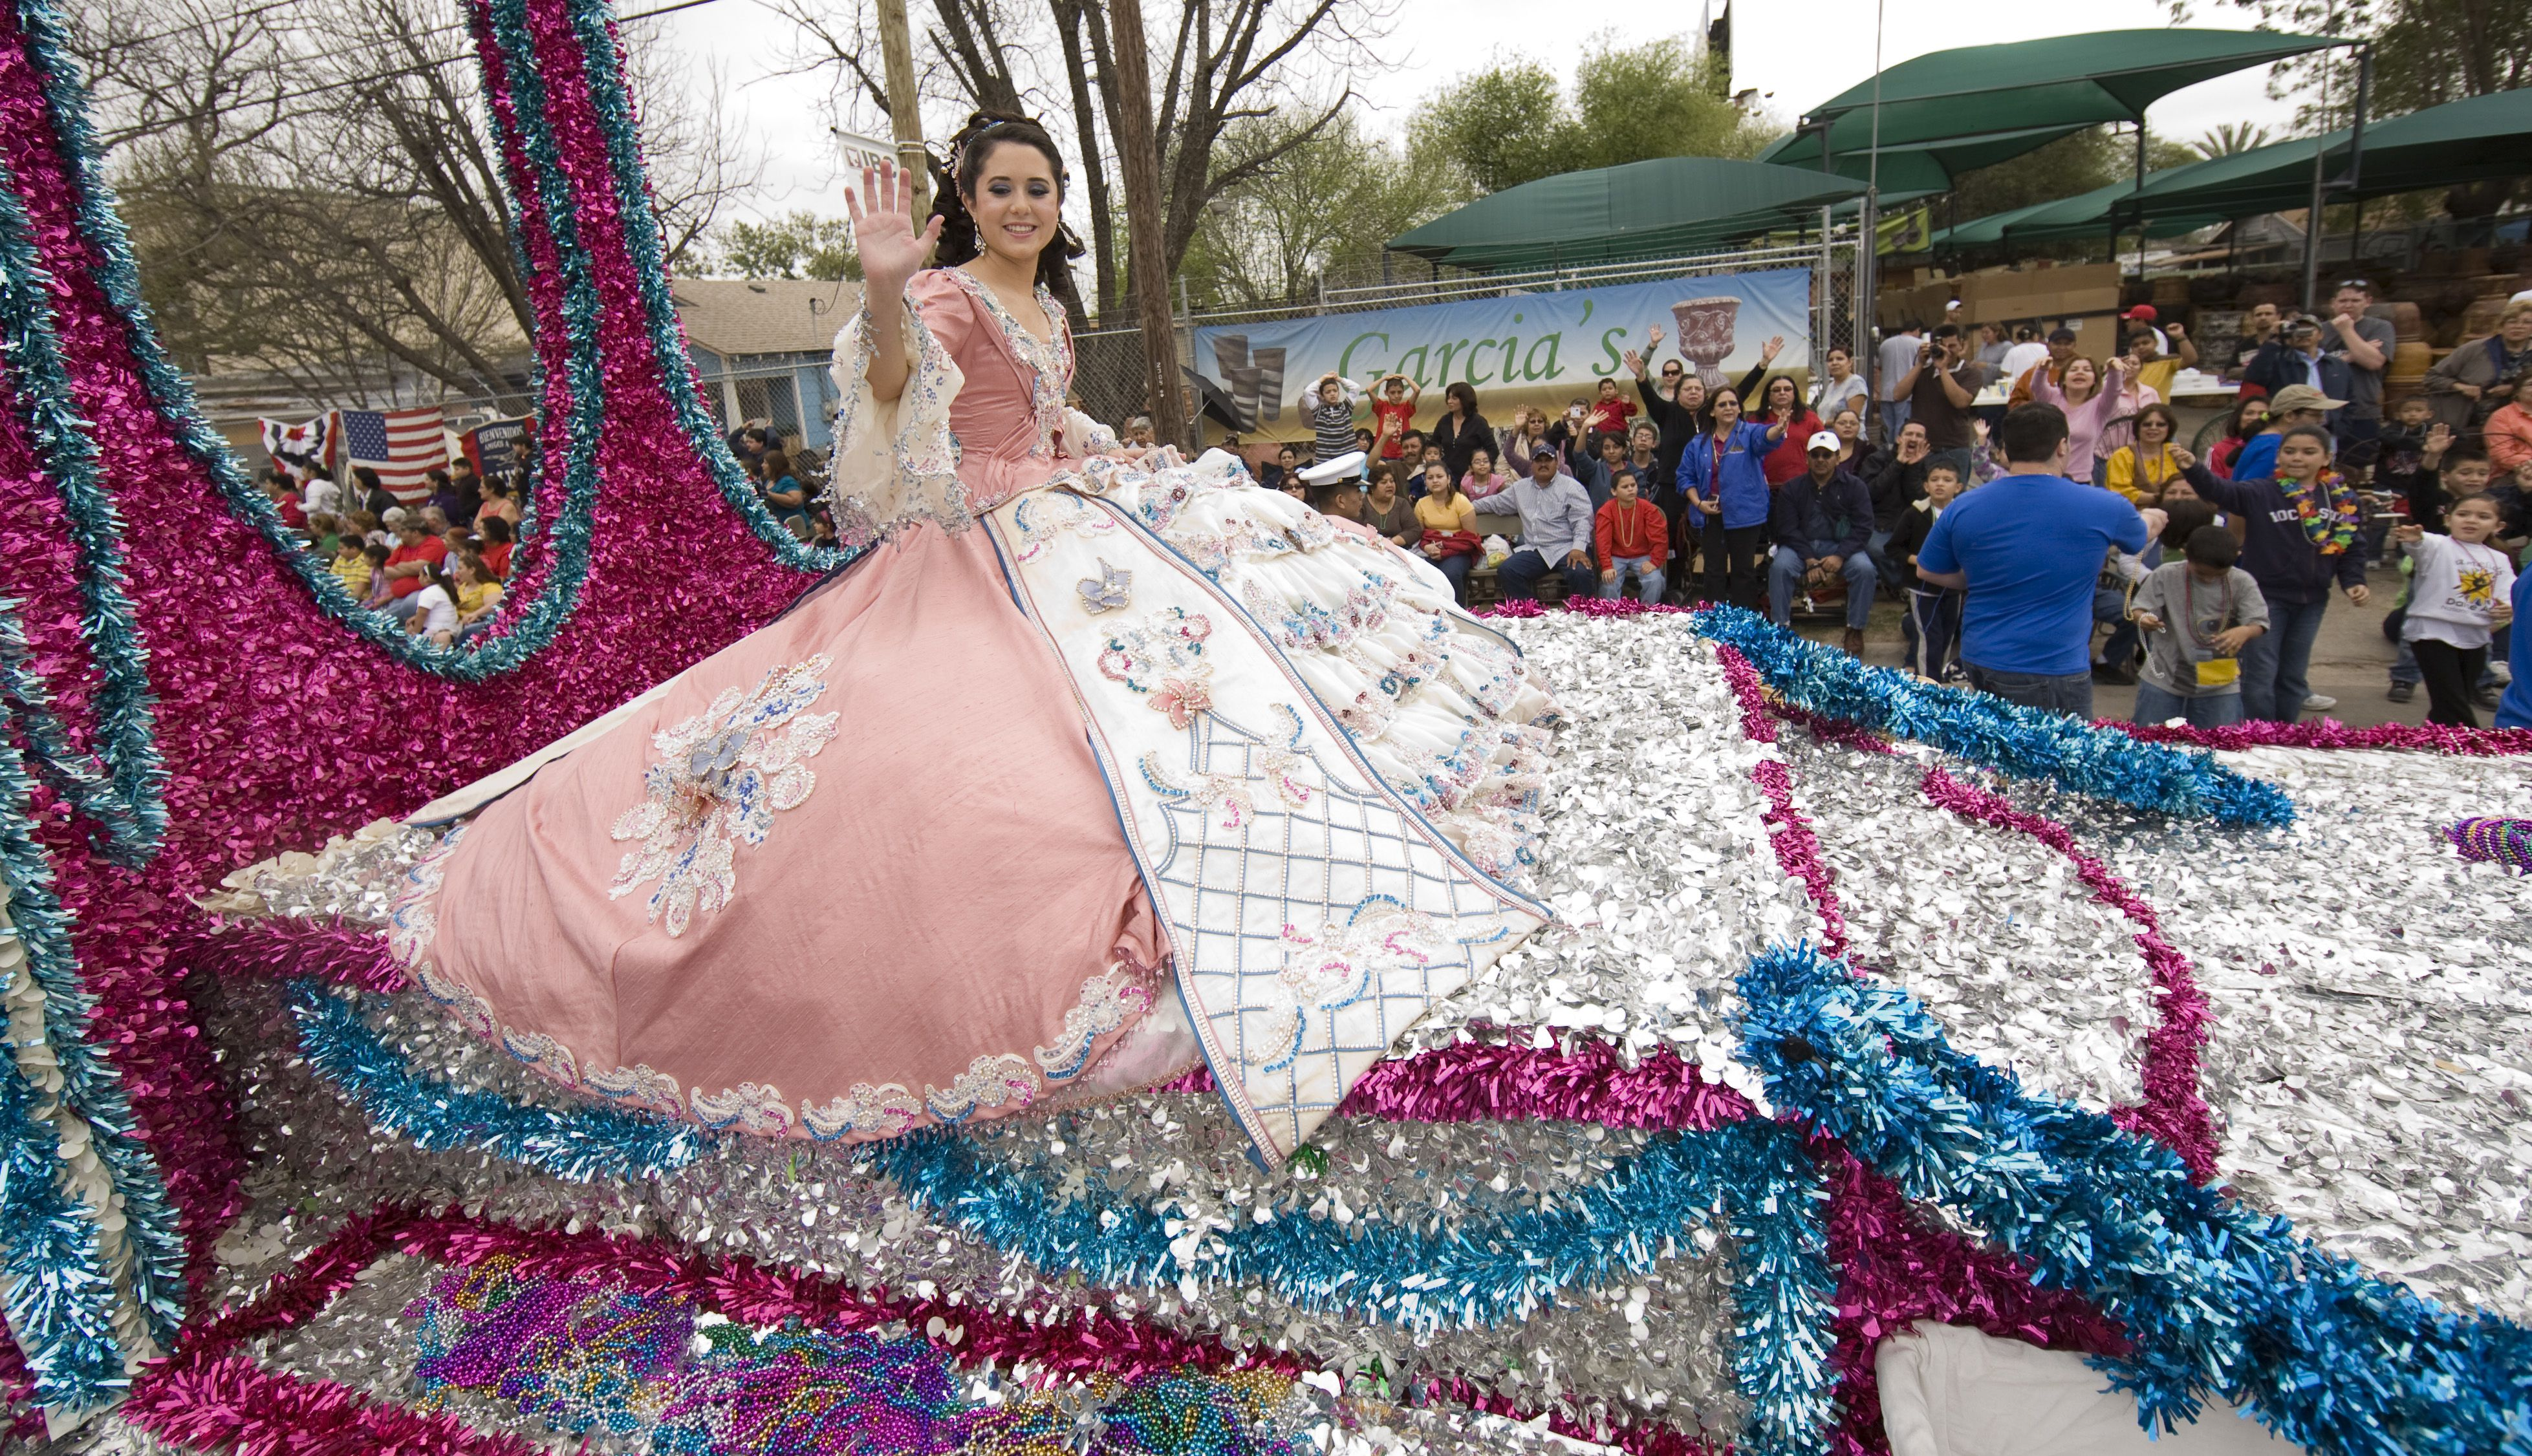 Girl in extravagant pink traditional dress on a parade float during the celebration of George Washington's birthday